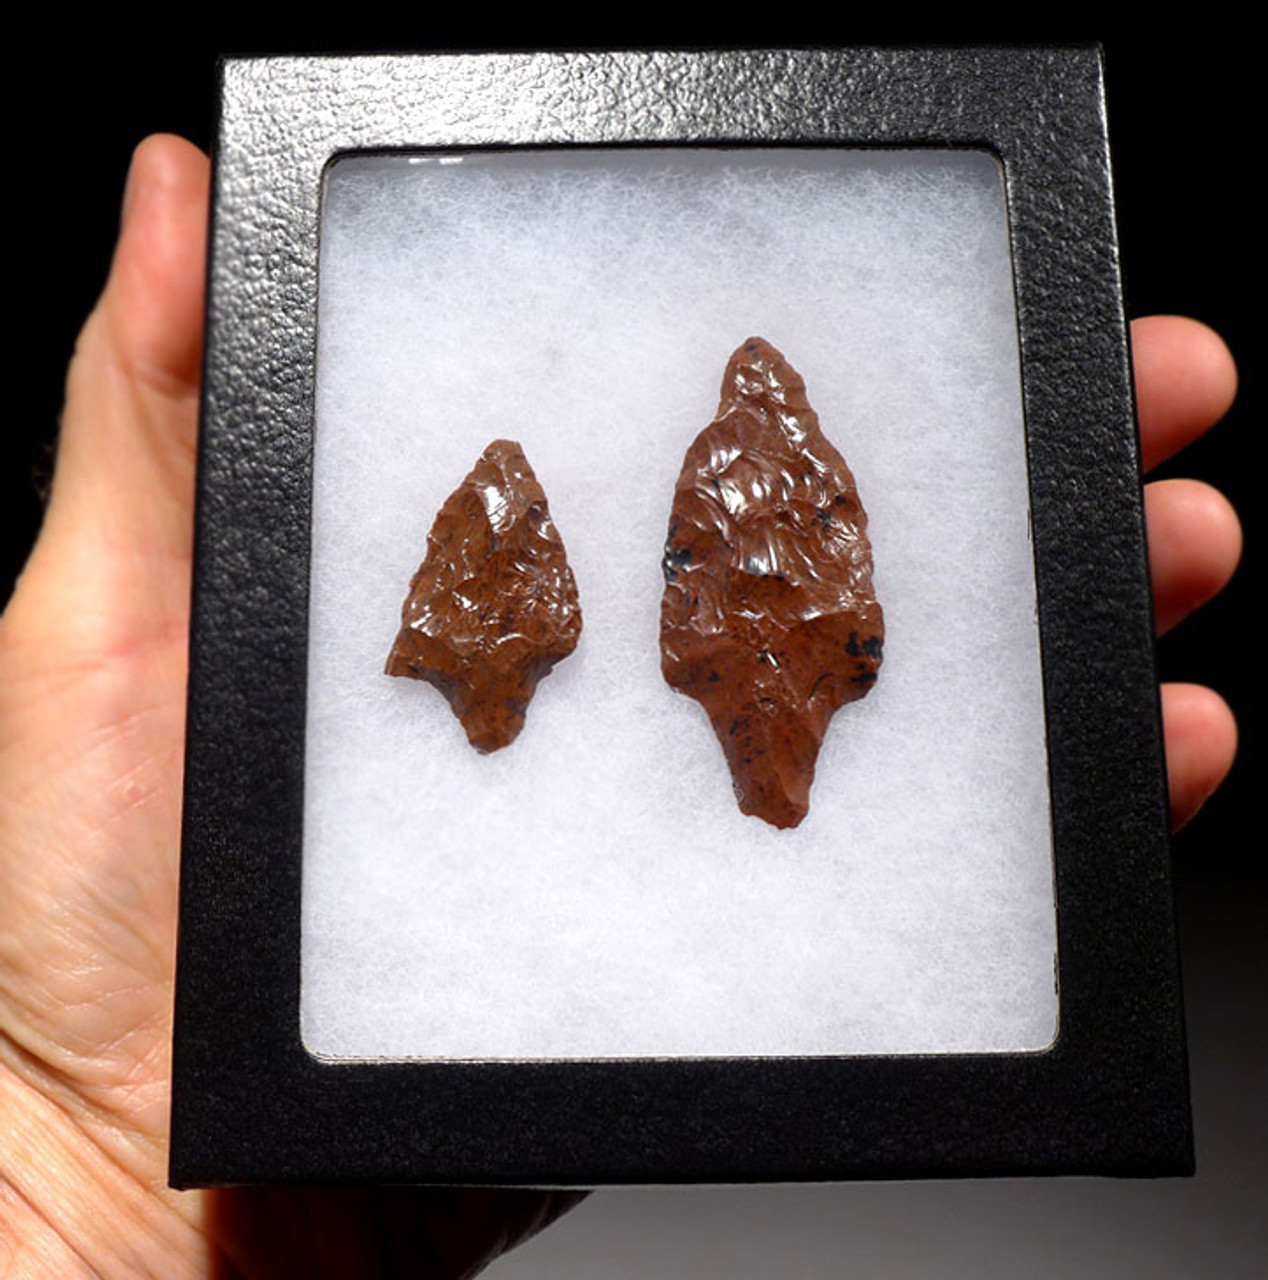 PC239- SET OF RARE RED PRE-COLUMBIAN OBSIDIAN ATLATL AND ARROWHEAD POINTS